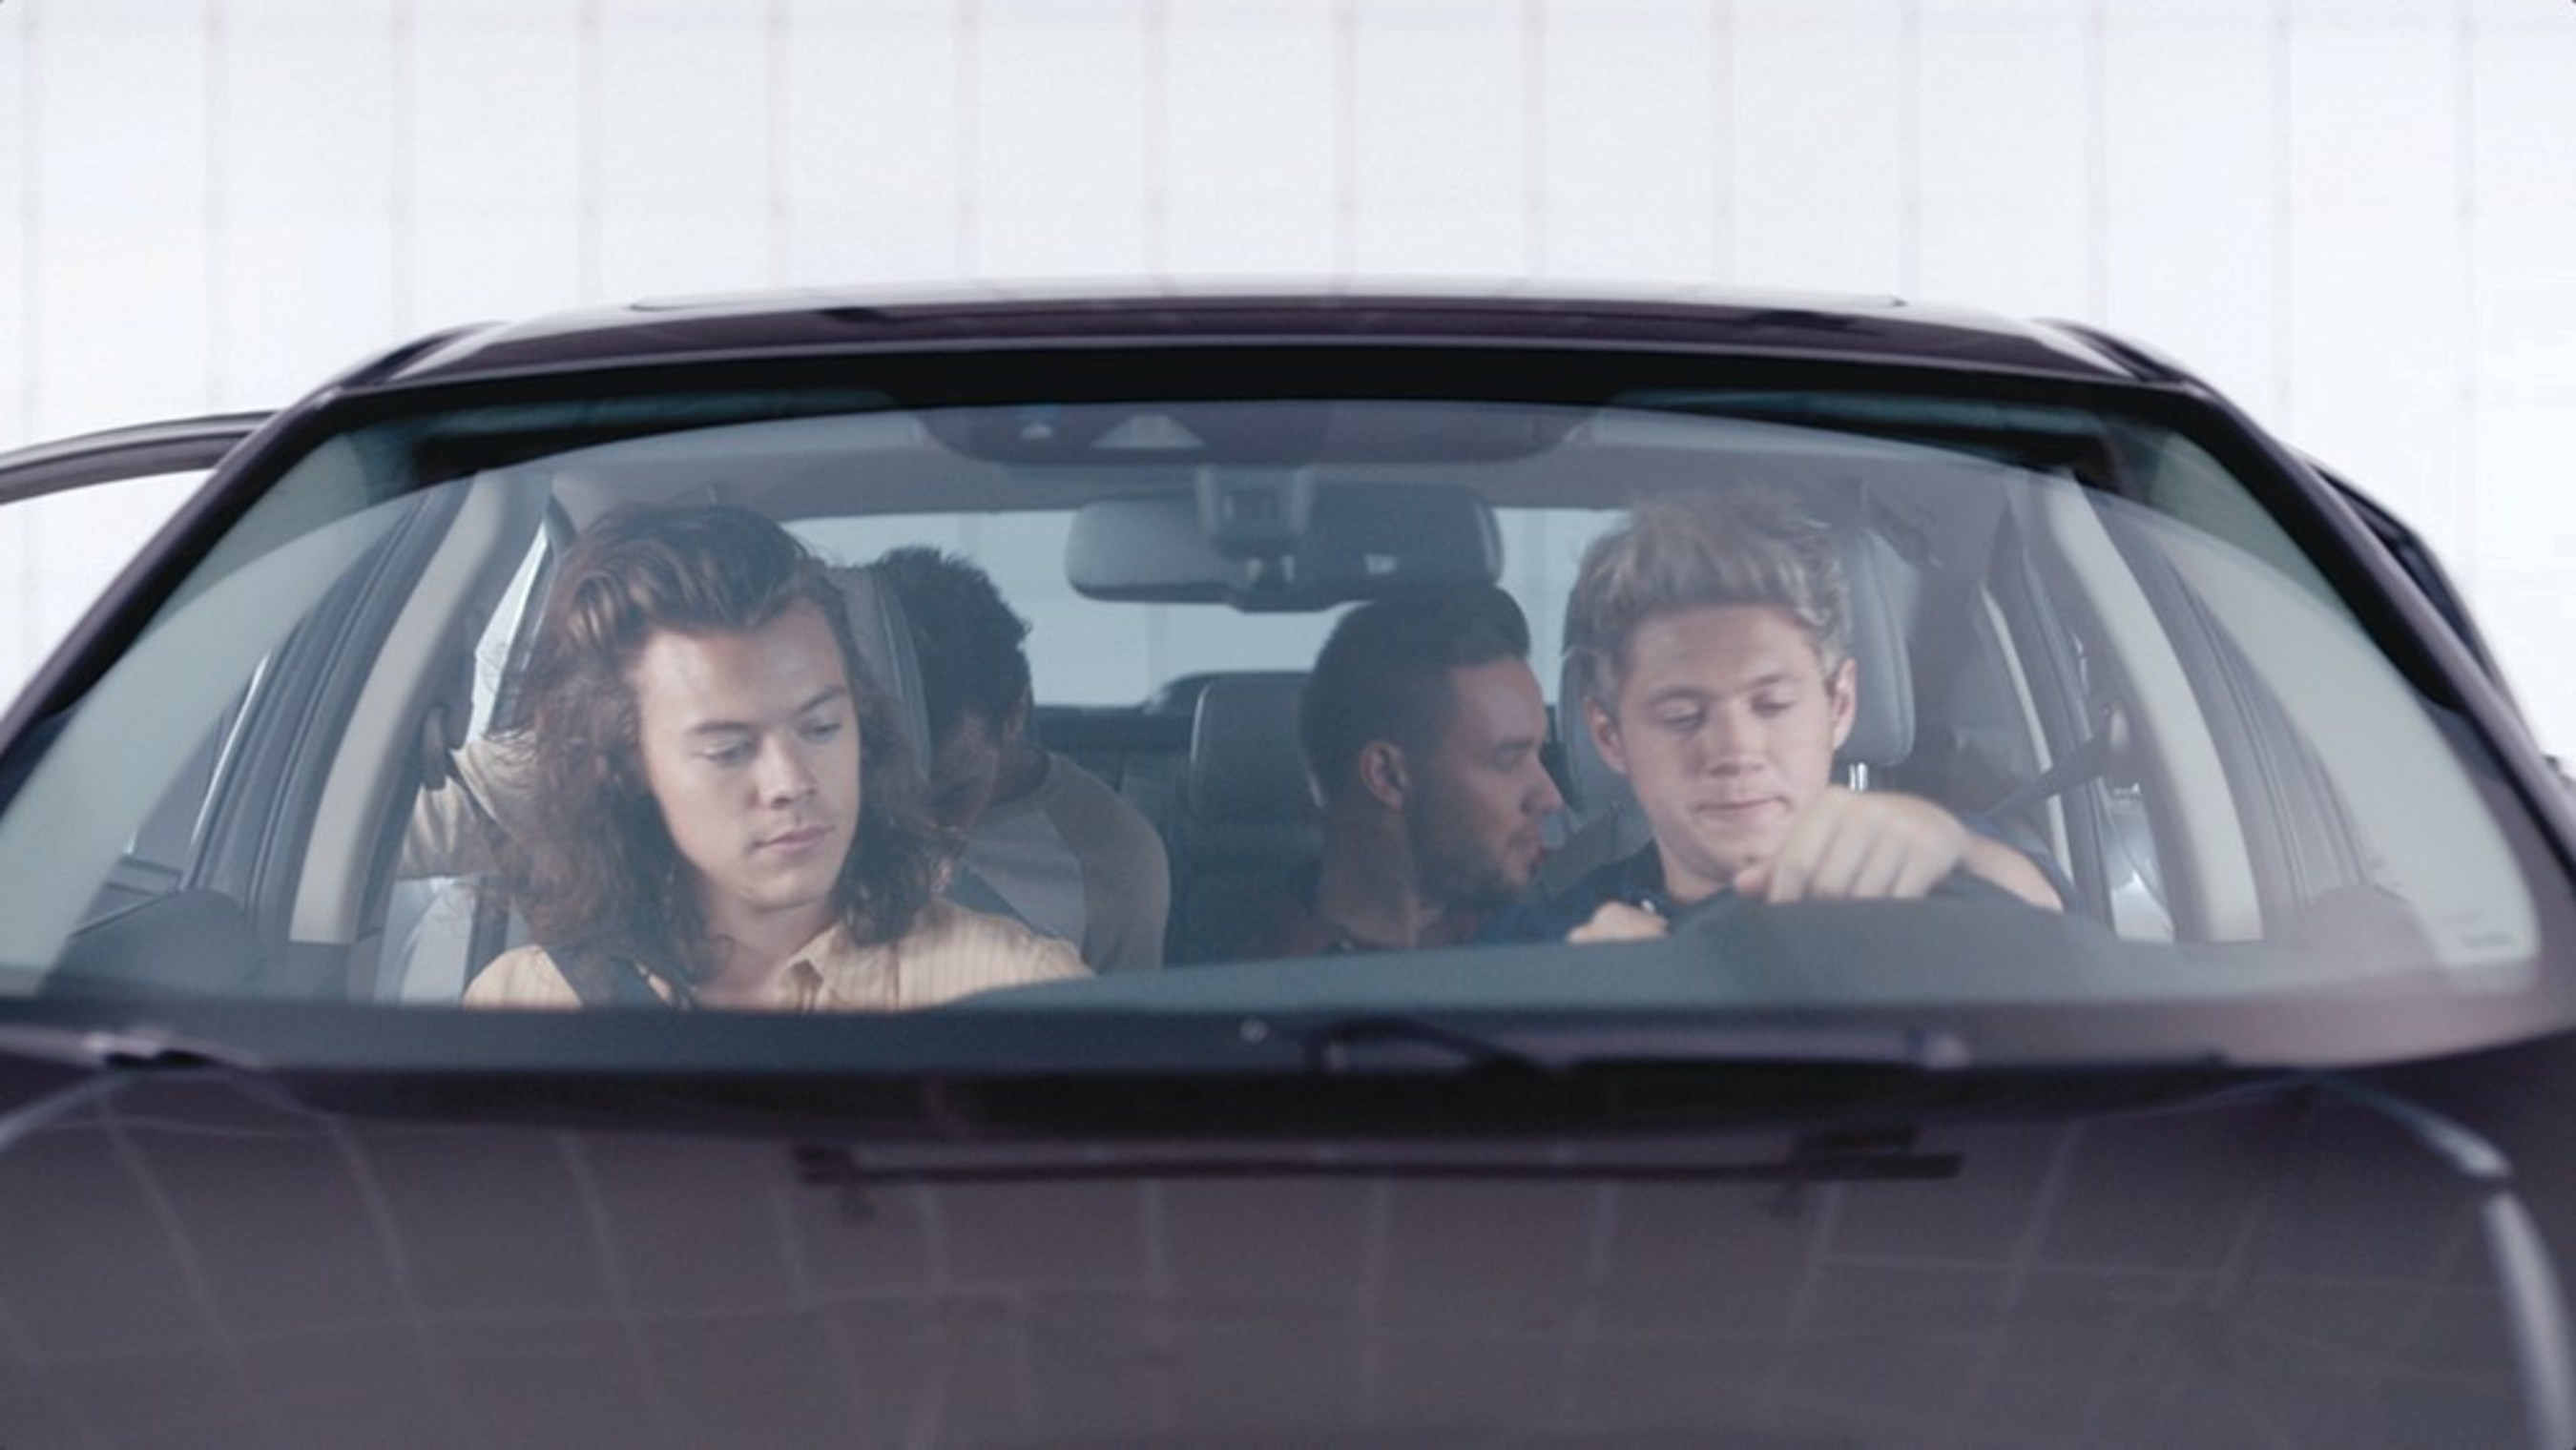 One Direction TV Spot for 2016 Civic Heralds Next Wave of Honda Stage, Honda Stage Brings More Original Music Programming, Expanded List of Digital and Live Music Experie